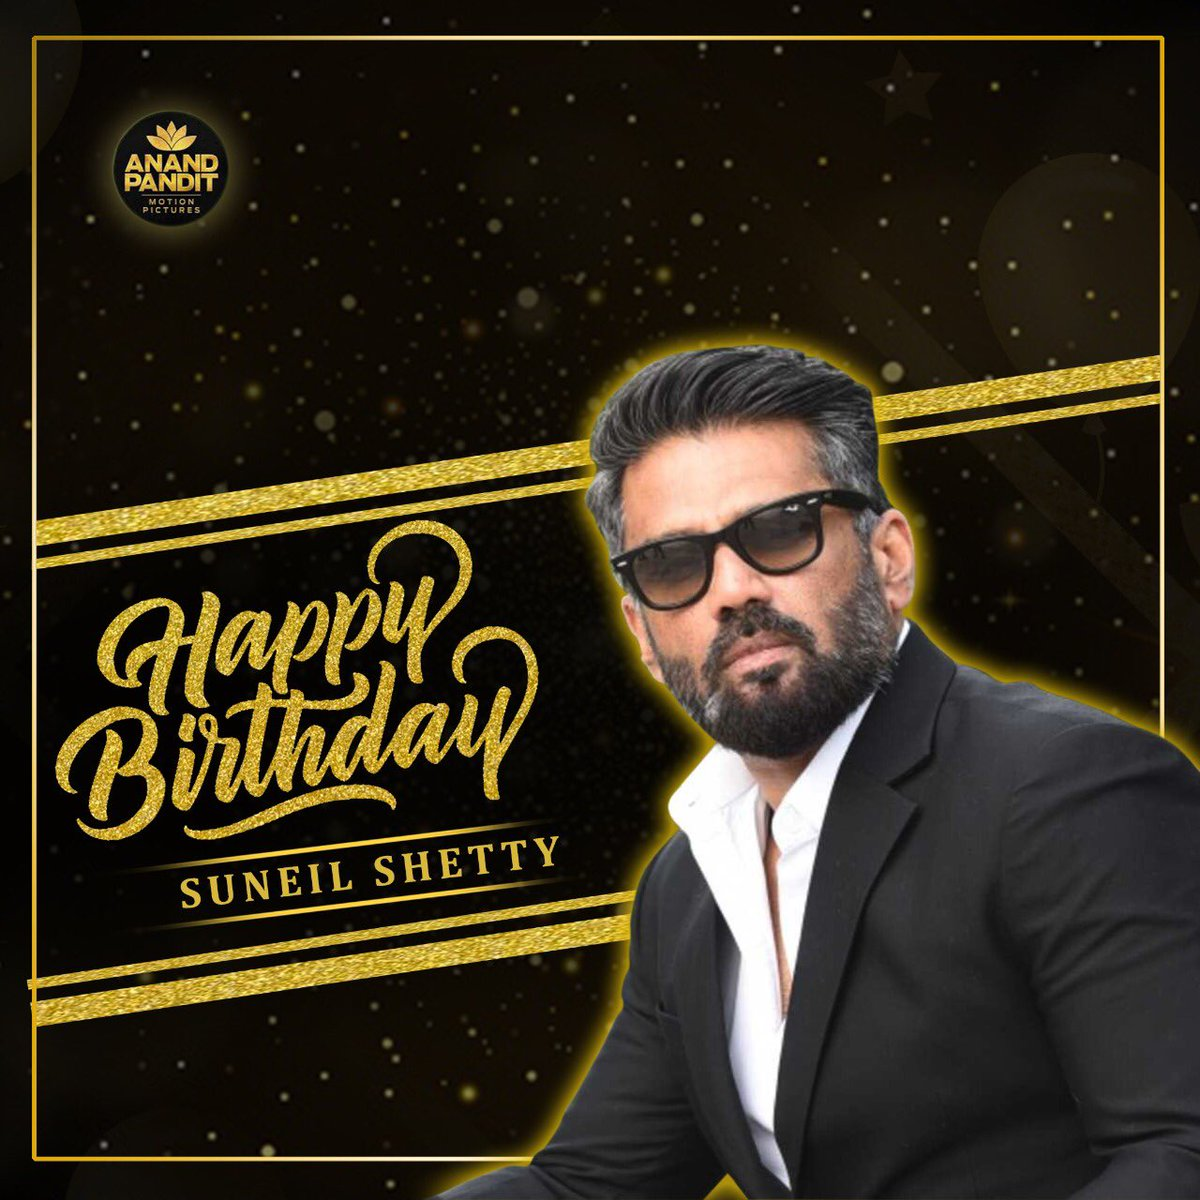 Birthday greetings to an amazing actor and super amazing human being who turns a year younger today @SunielVShetty. Wishing you prosperity, love, and good health always! . #HappyBirthdaySunielShetty #HappyBirthday #SunielShetty https://t.co/1UrQmFSxJI